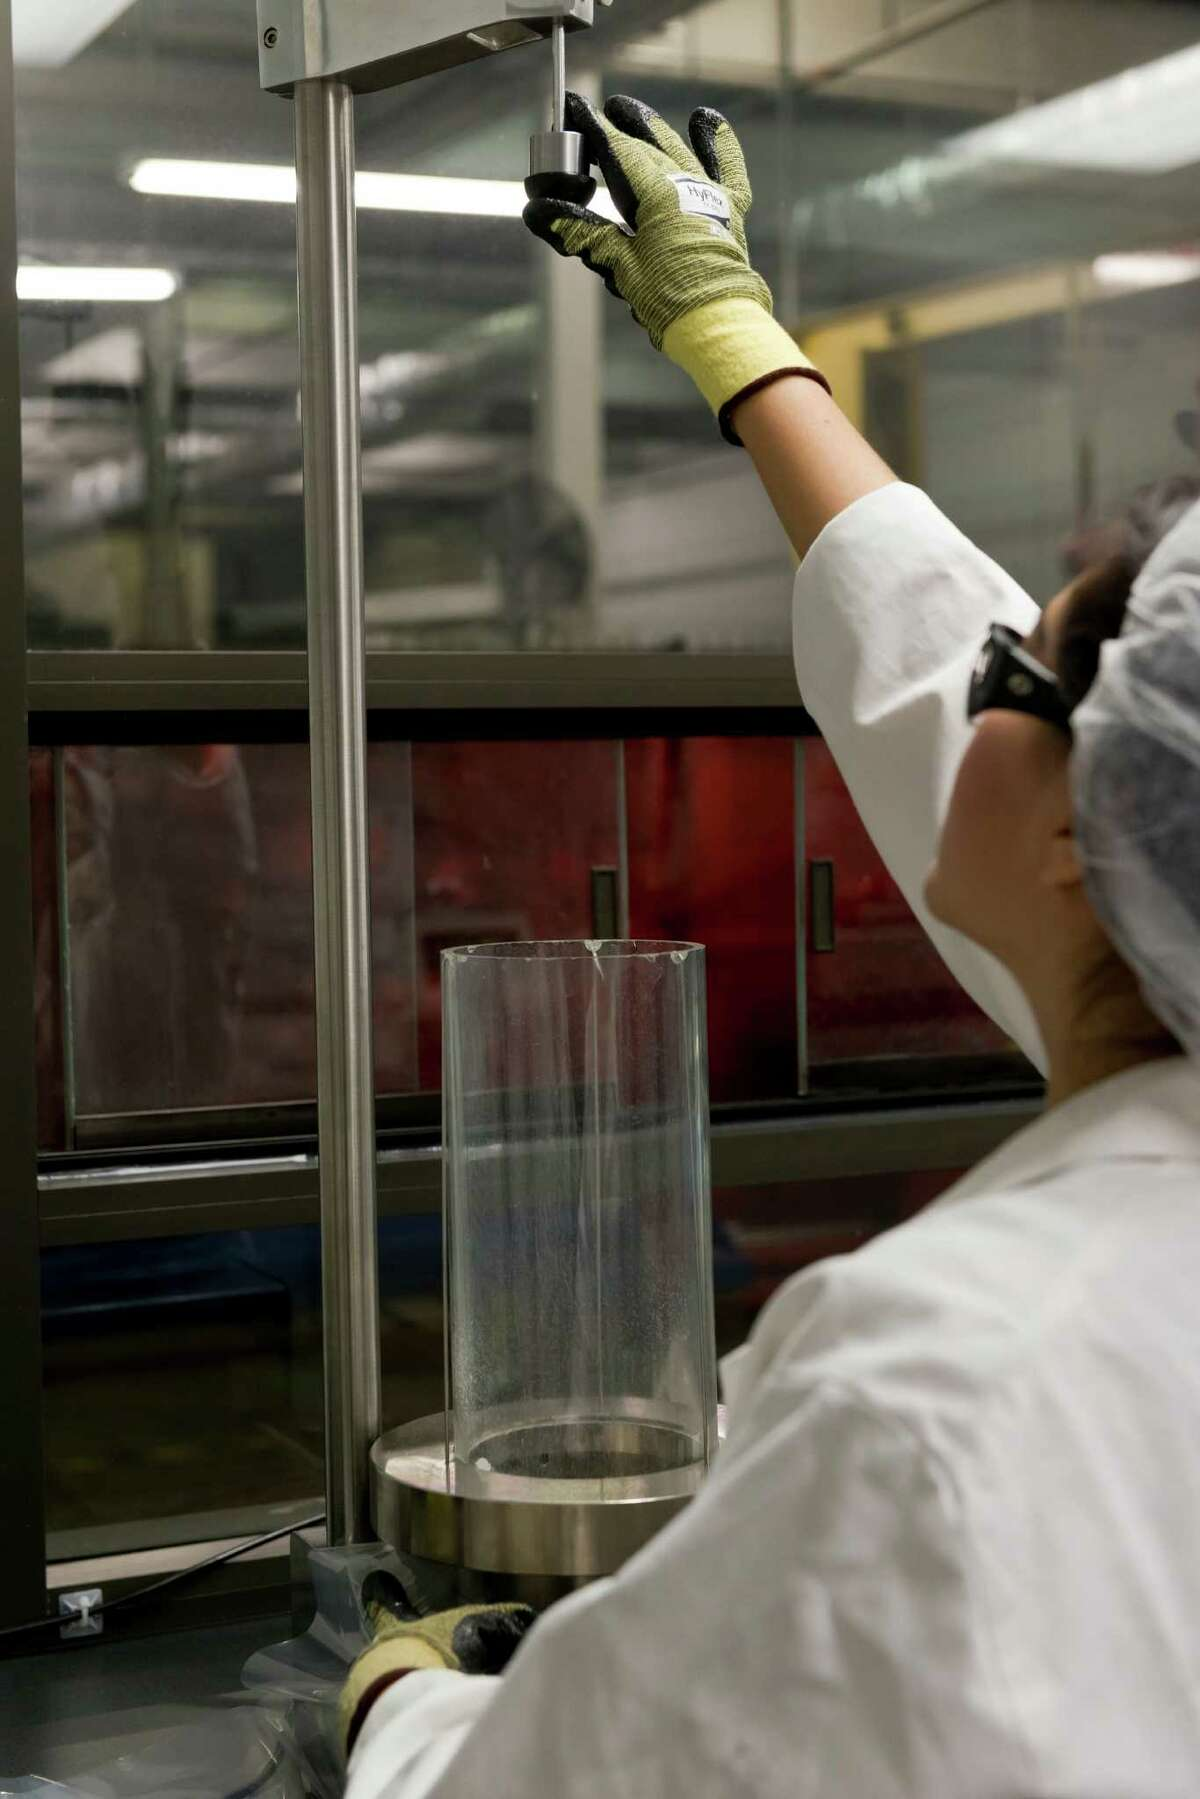 A quality control worker at Houston's Superbag performs a test measuring the strength of plastic film the company uses to make bags.